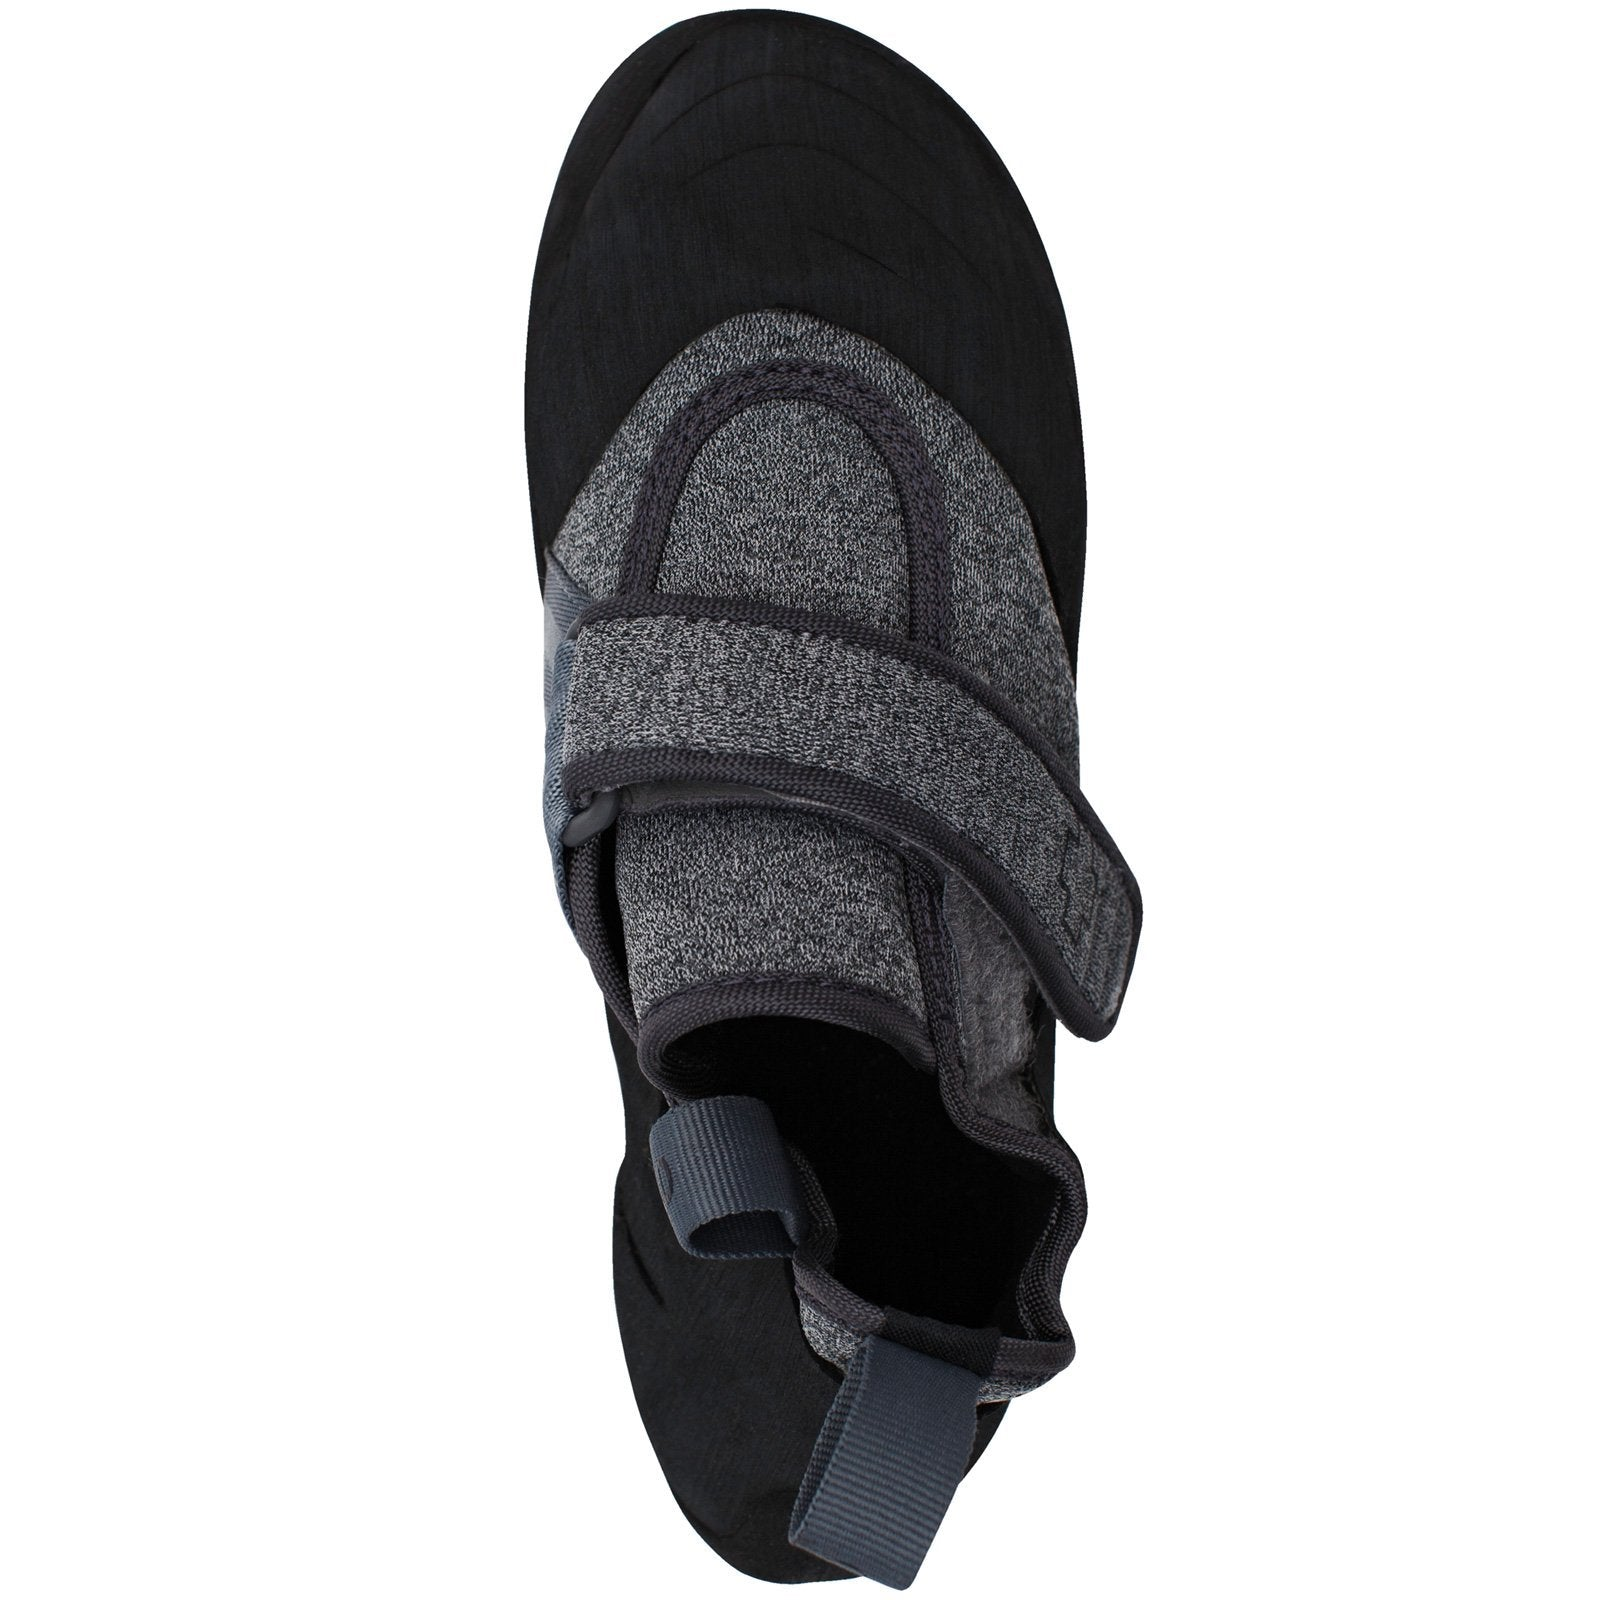 So iLL New Zero Rock Climbing Shoe in Grey – Top View